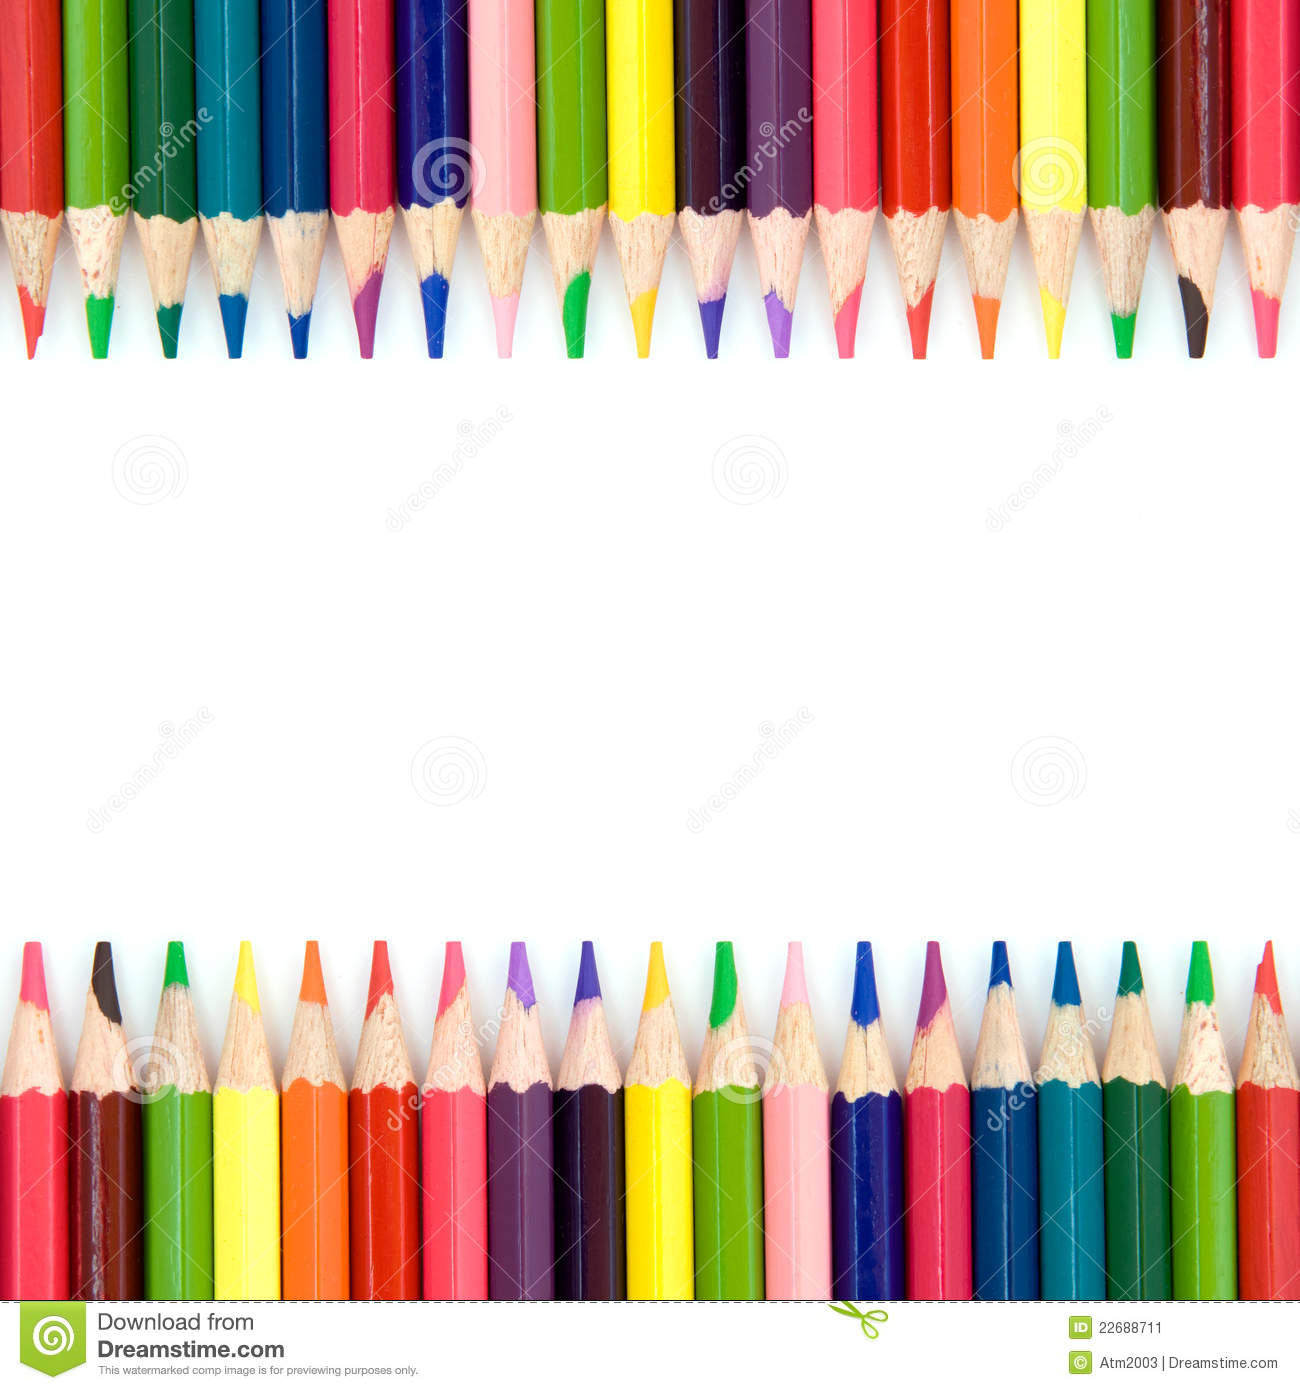 Background With Color Pencils Stock Image - Image of brown